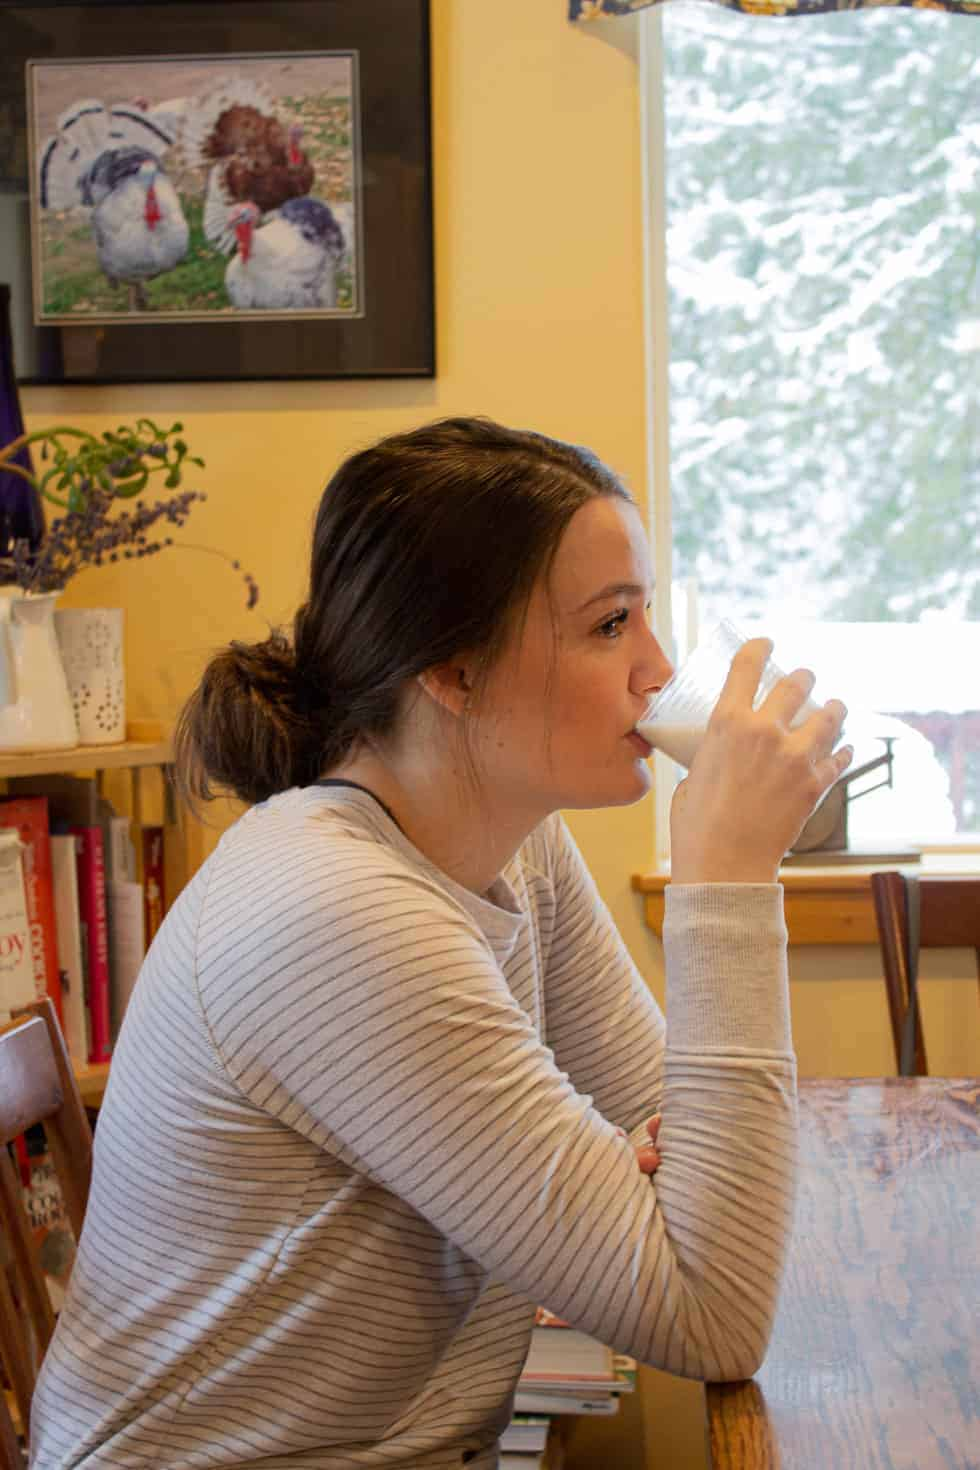 A girl drinking a glass of milk at a kitchen table.